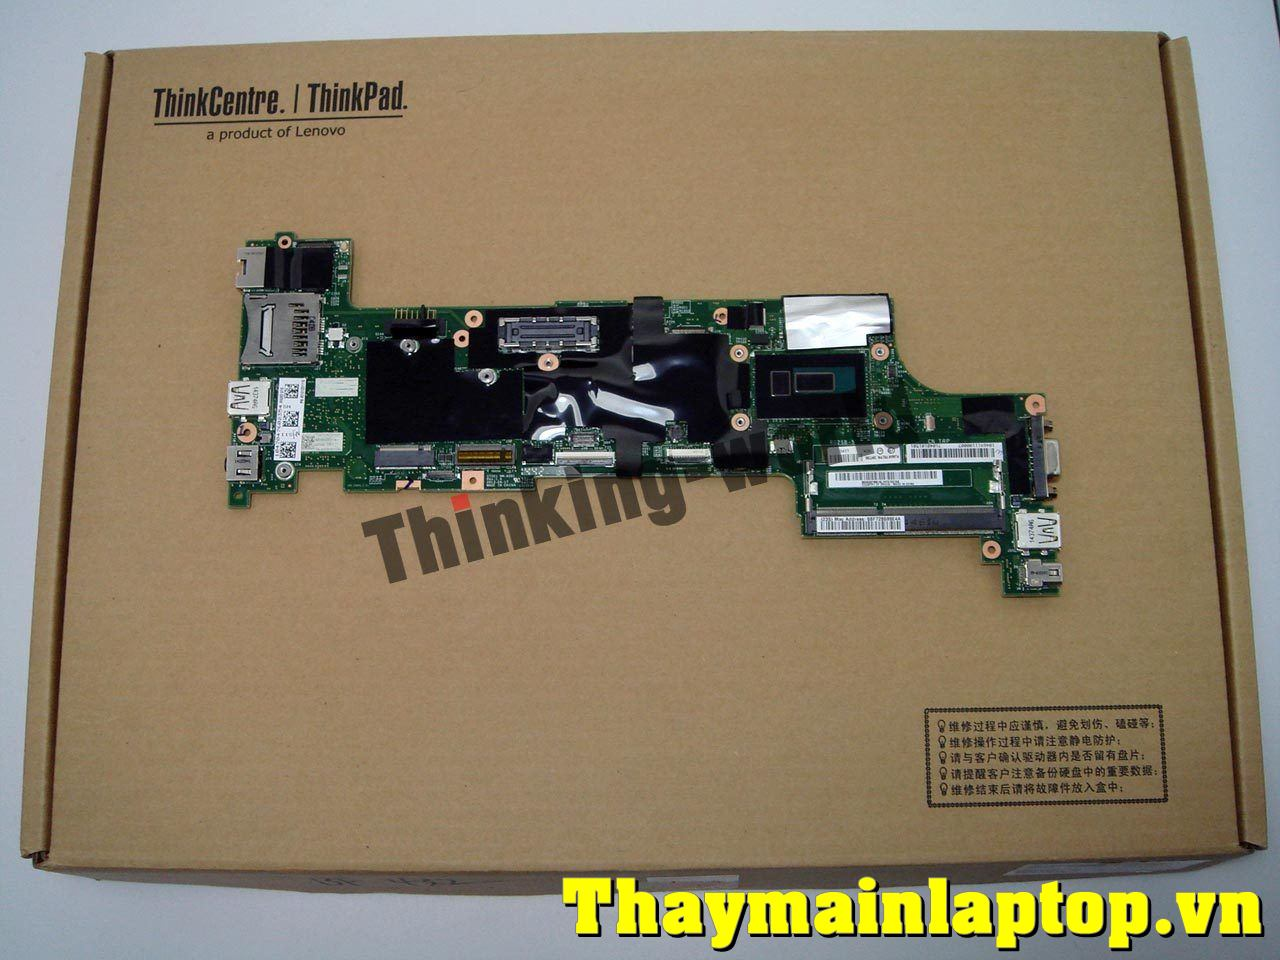 Main Lenovo Thinkpad X250 CPU I3-5010